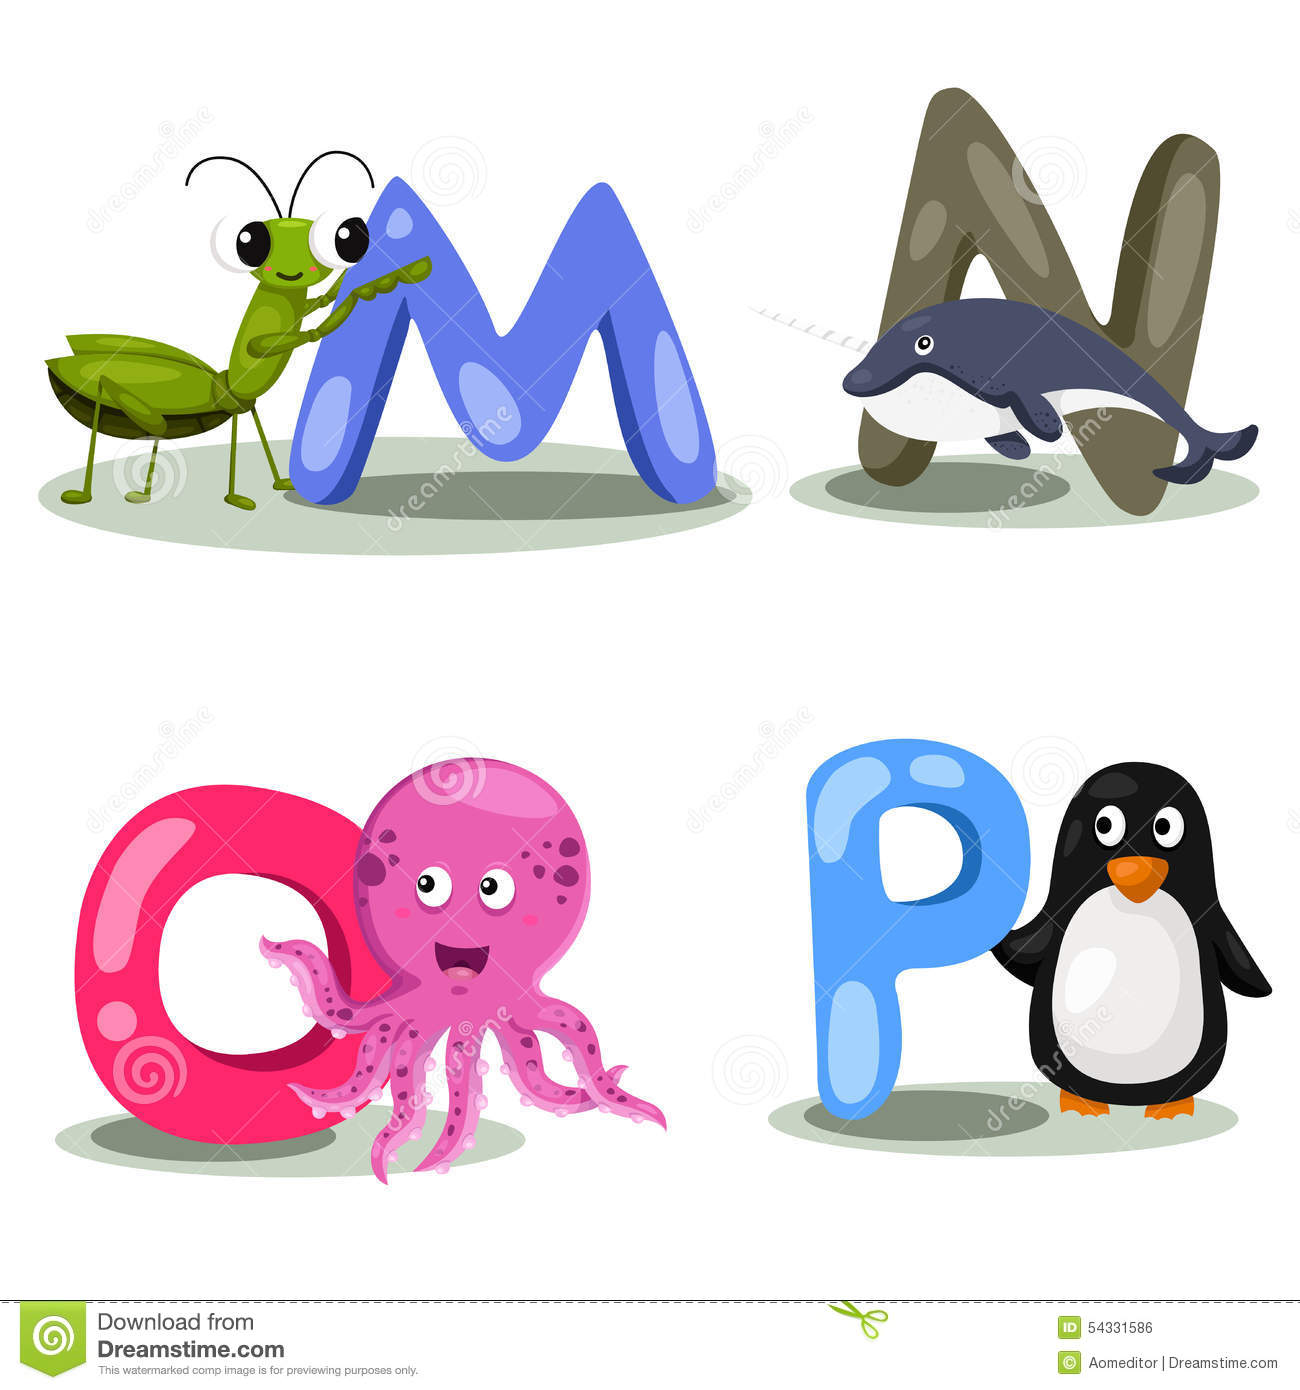 Image of: Funny Cartoon Illustrator Alphabet Animal Letter Mnop Cute And Education Dreamstimecom Illustrator Alphabet Animal Letter Mnop Stock Vector